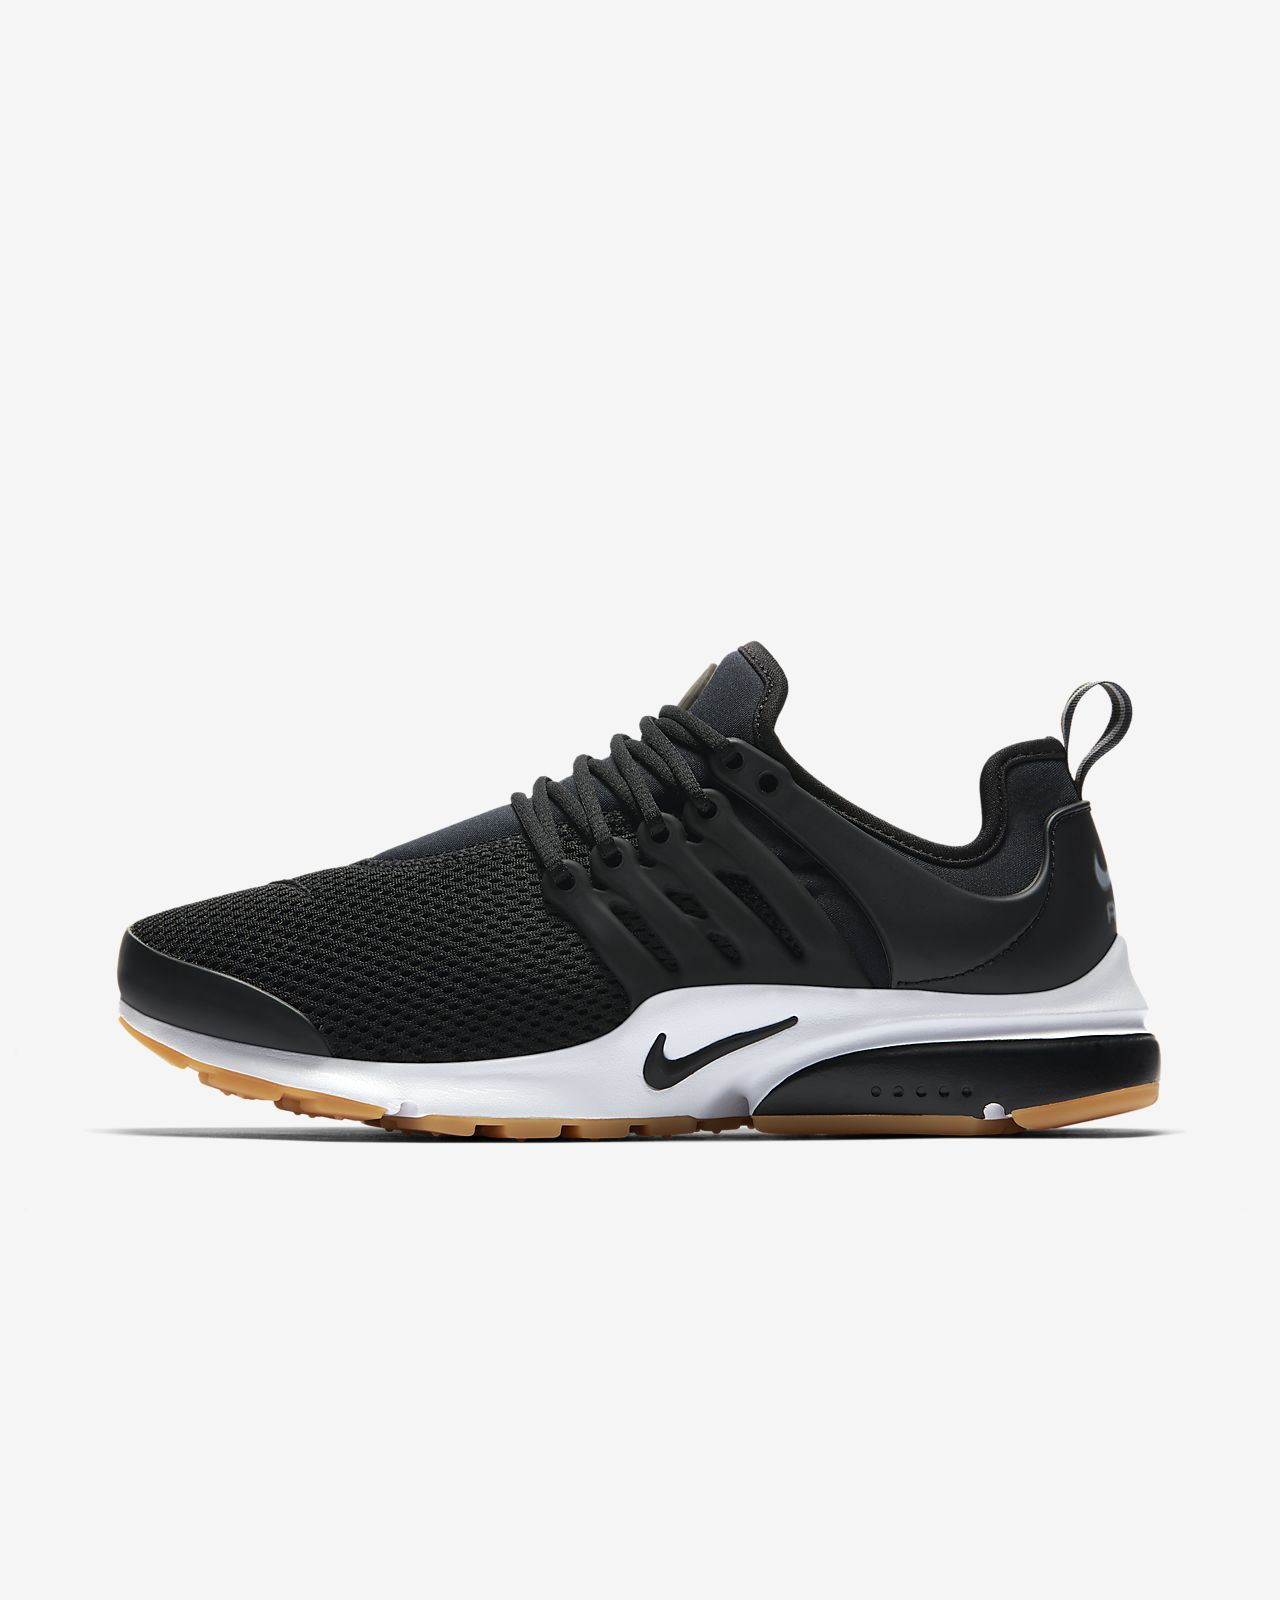 watch a2997 b29c8 ... Nike Air Presto Women s Shoe